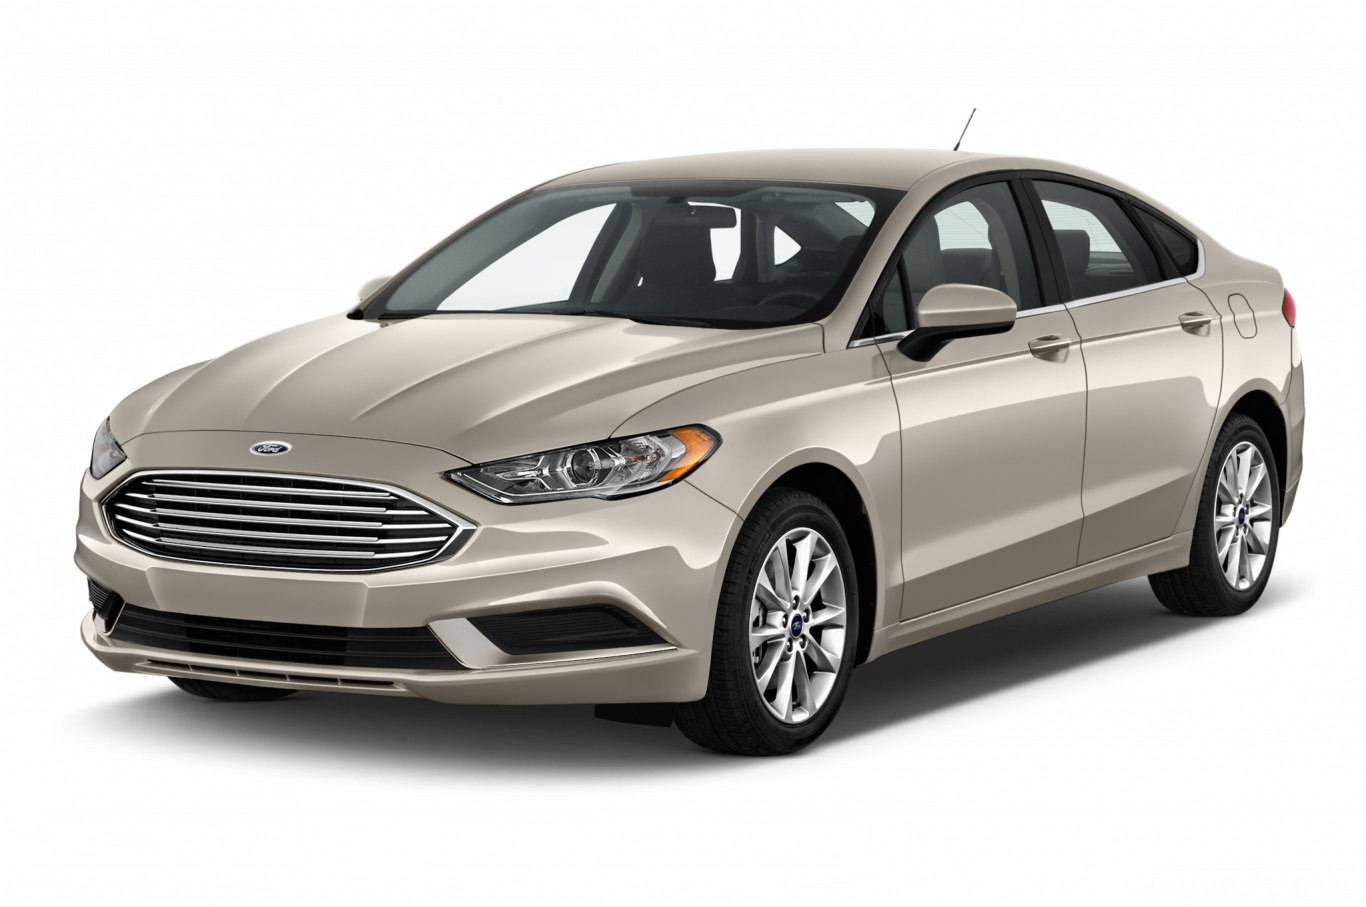 Xe Ford Fusion 2020